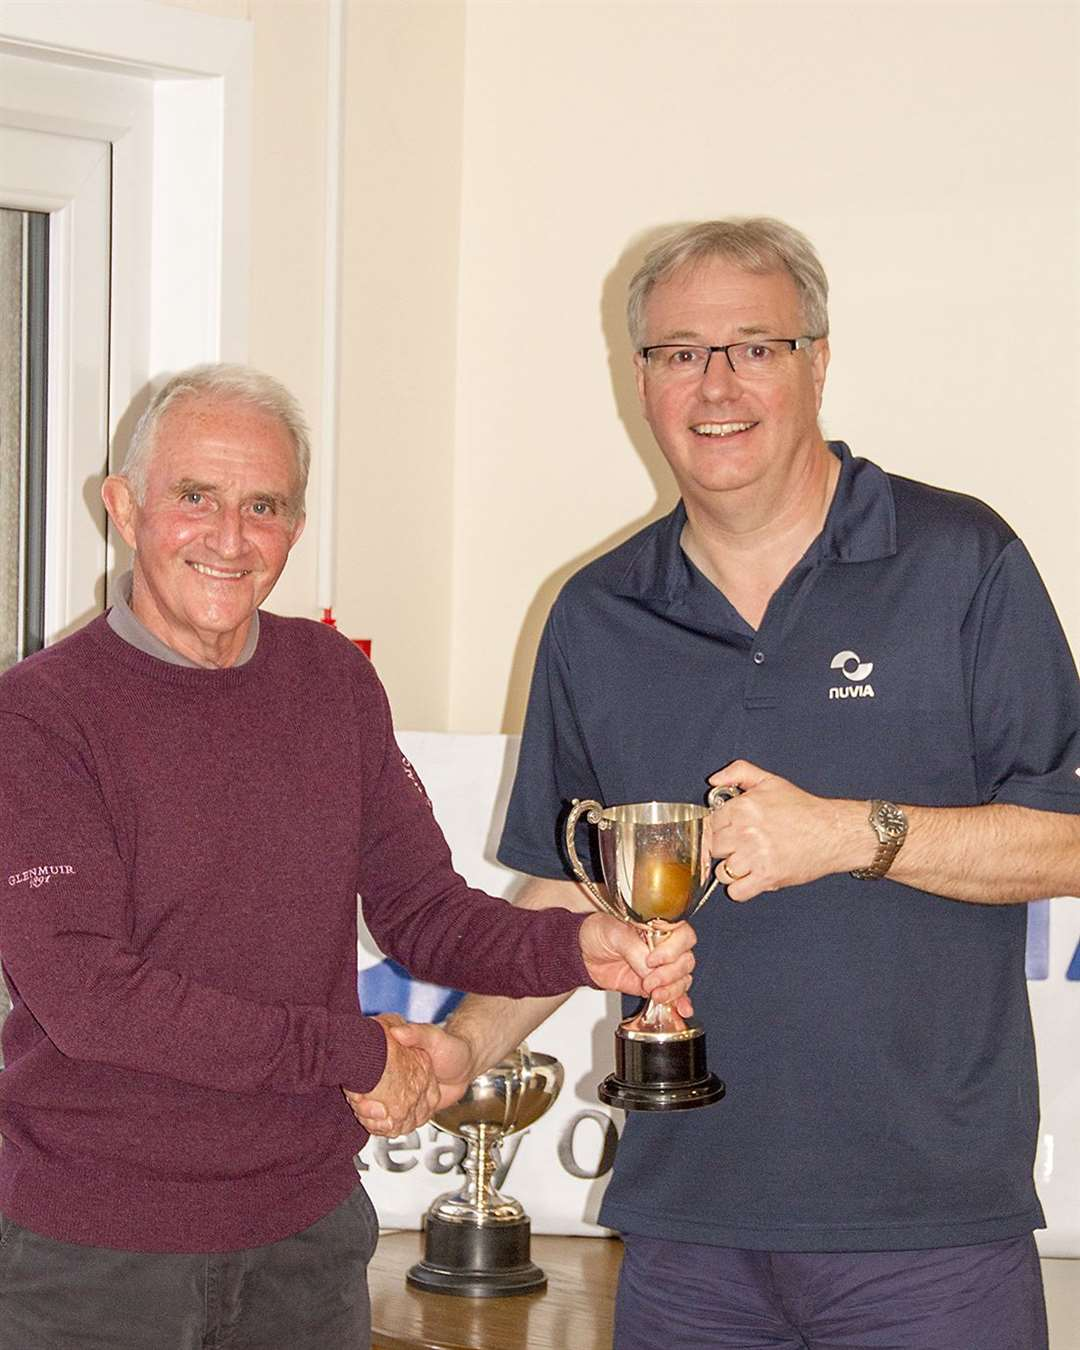 David Craig (right), business director of Nuvia, presenting the handicap trophy to Fred Groves.